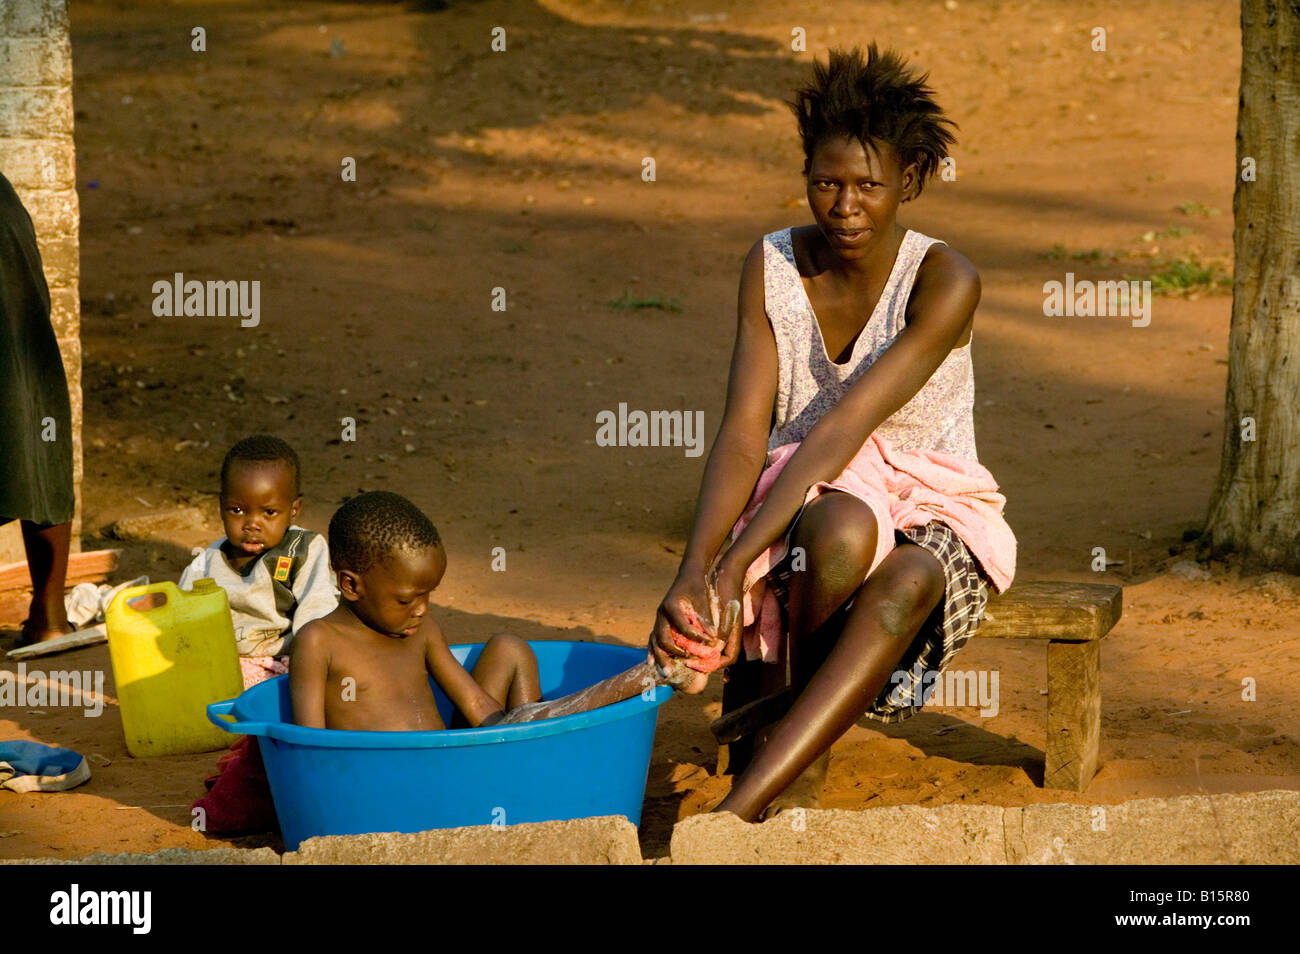 Africa, Afrique, Zimbabwe, children, girl, people, culture, etnic, rural, typical, travel, holidays, portrait, poverty, - Stock Image